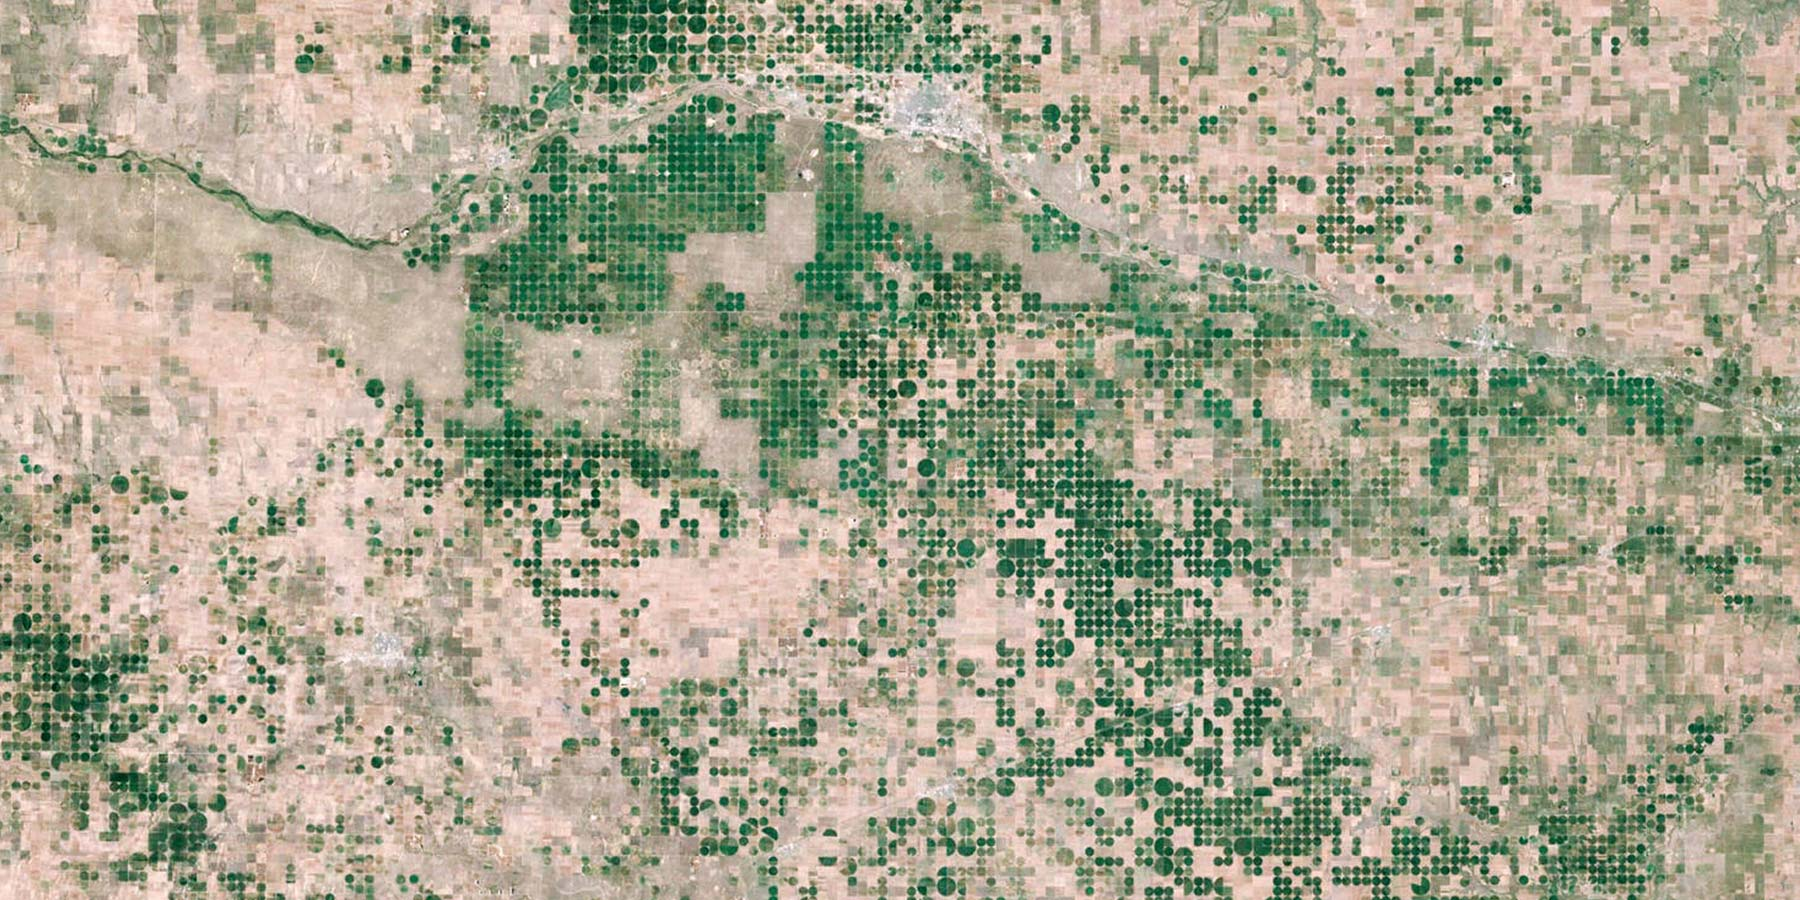 Satellite view of cultivated fields